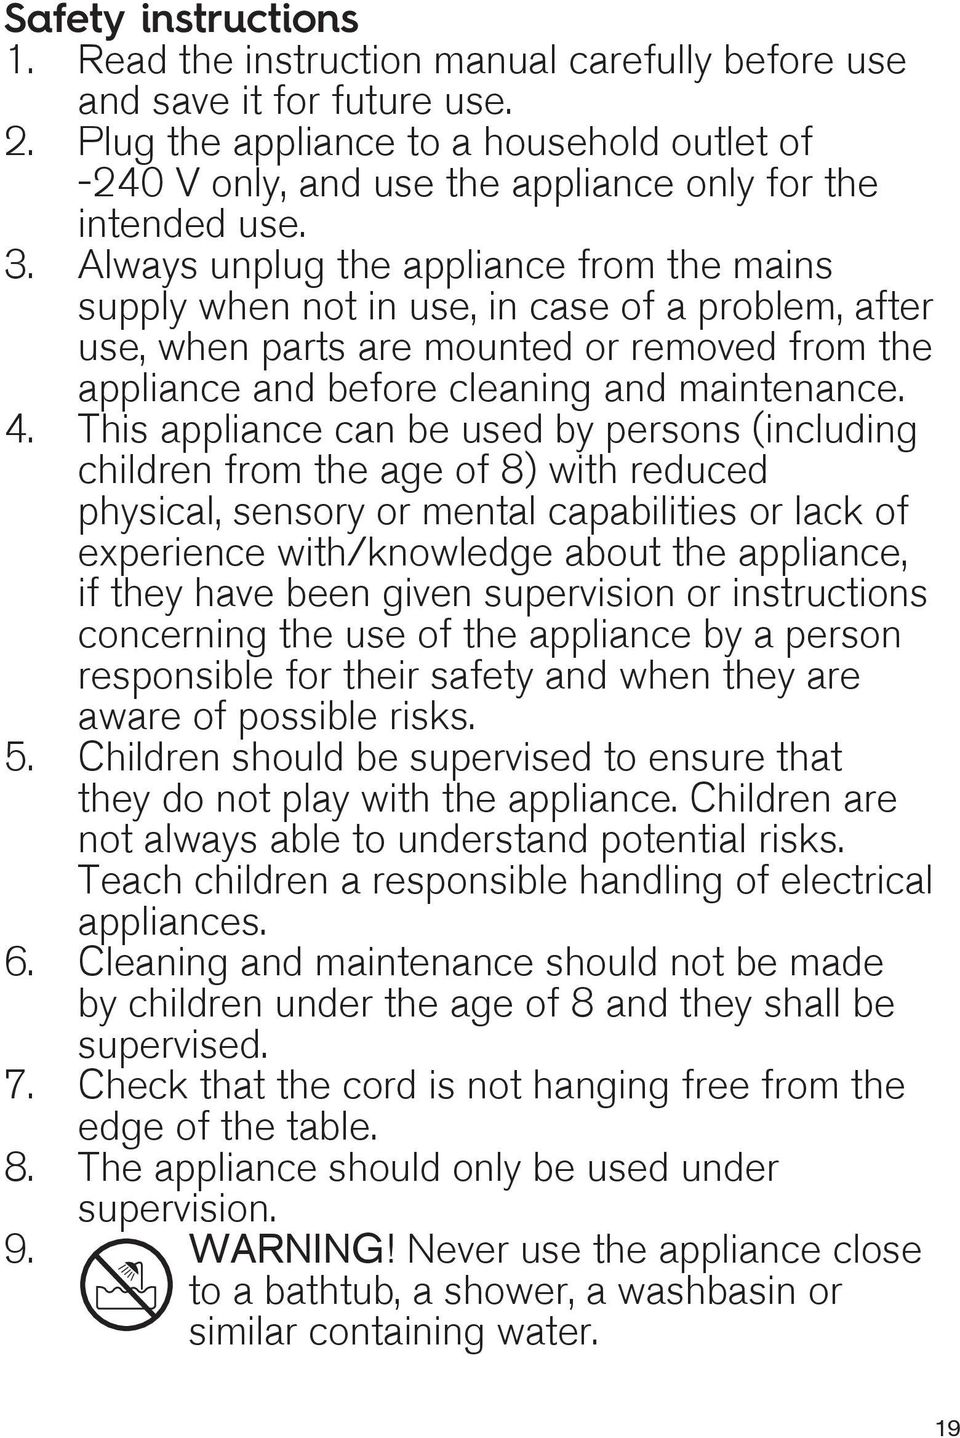 Always unplug the appliance from the mains supply when not in use, in case of a problem, after use, when parts are mounted or removed from the appliance and before cleaning and maintenance. 4.